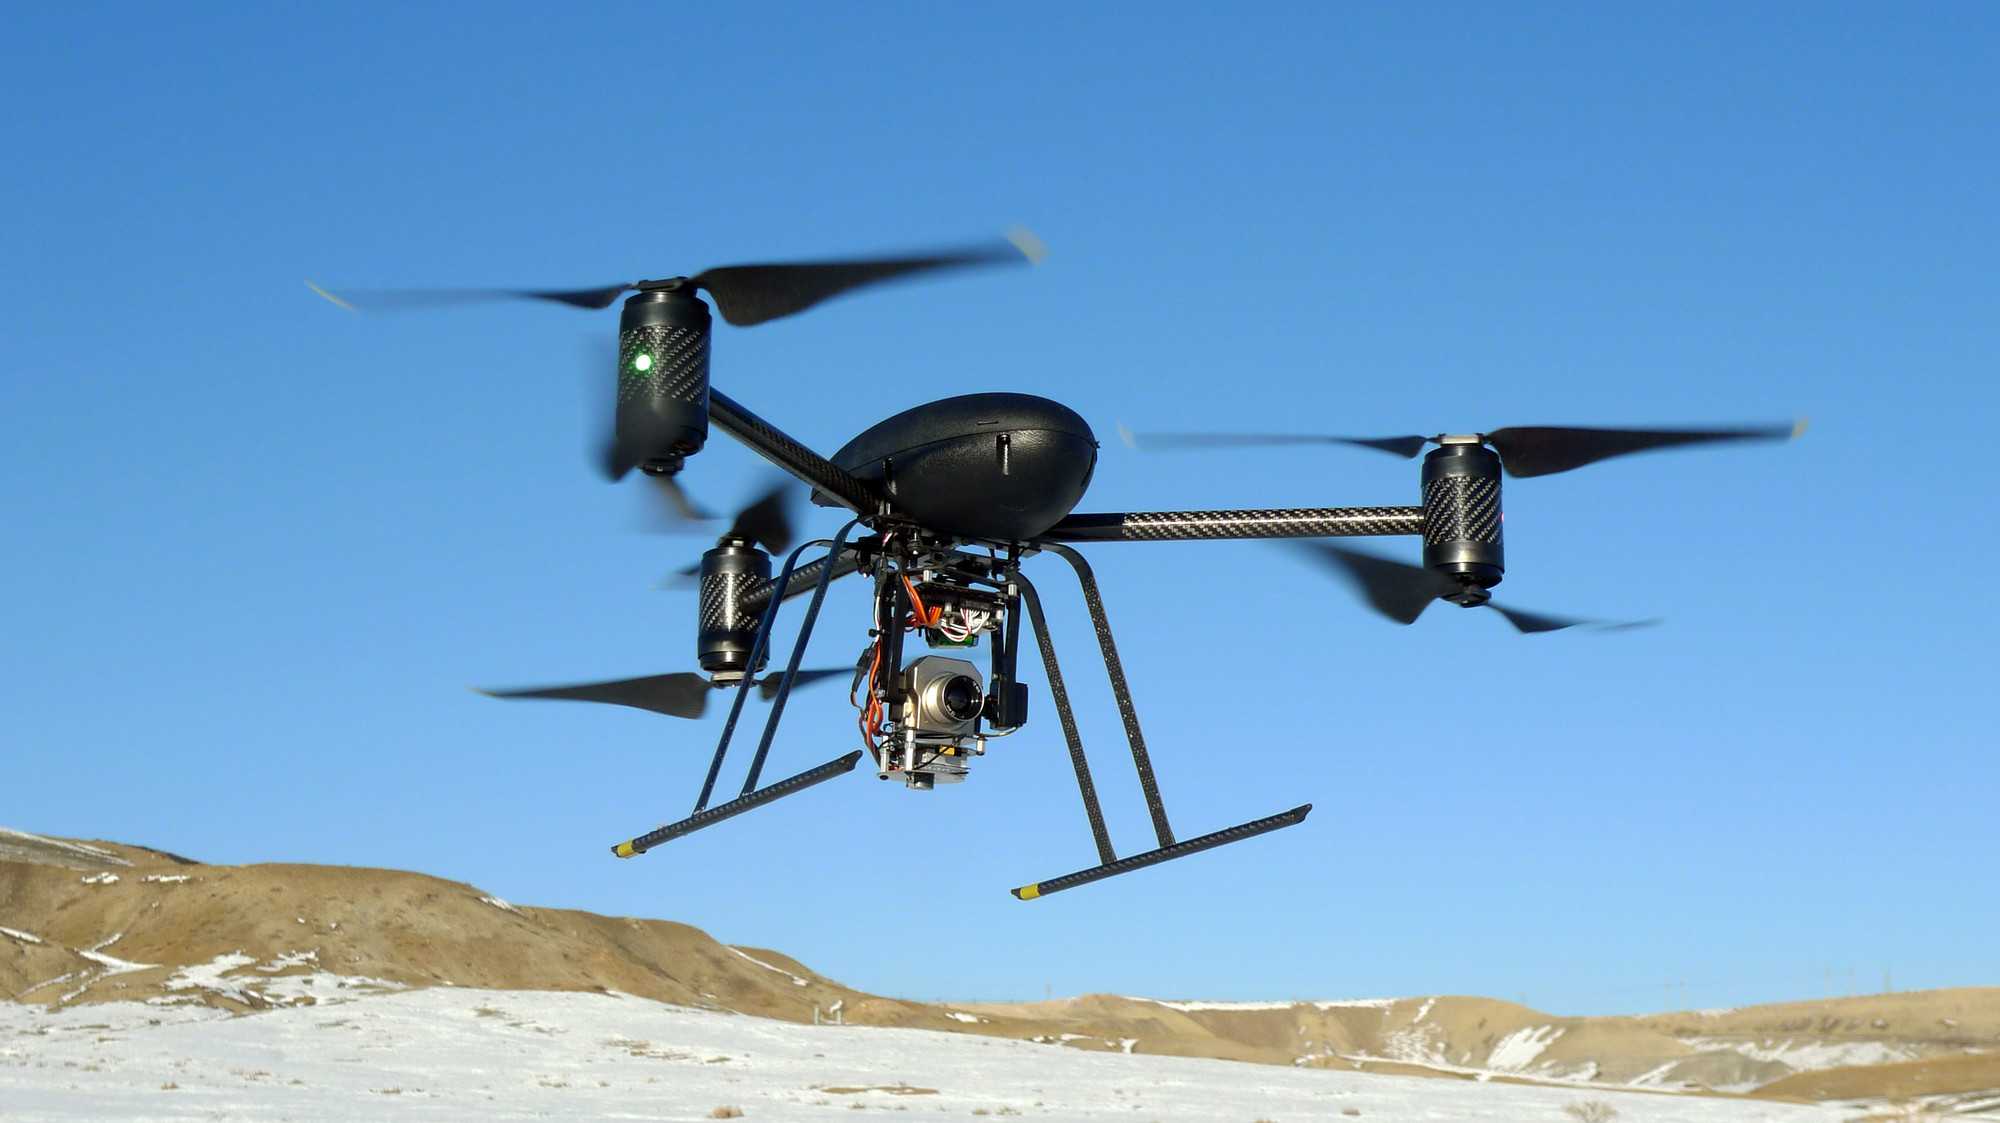 Drone makes a test flight in Mesa County, Colo. (AP Photo/Mesa County Sheriff's Unmanned Operations Team)